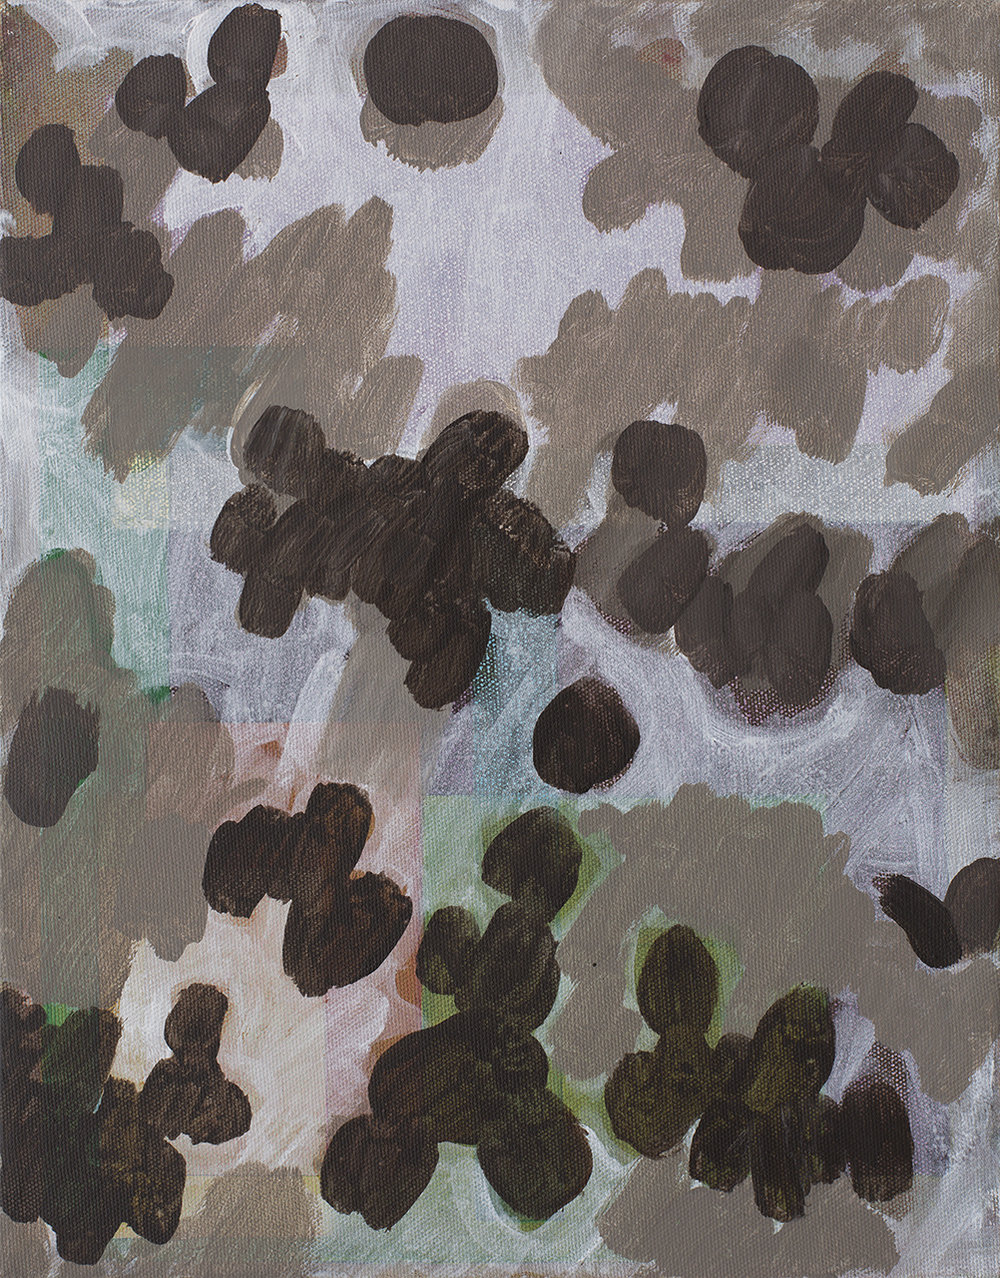 Untitled (Clouds)